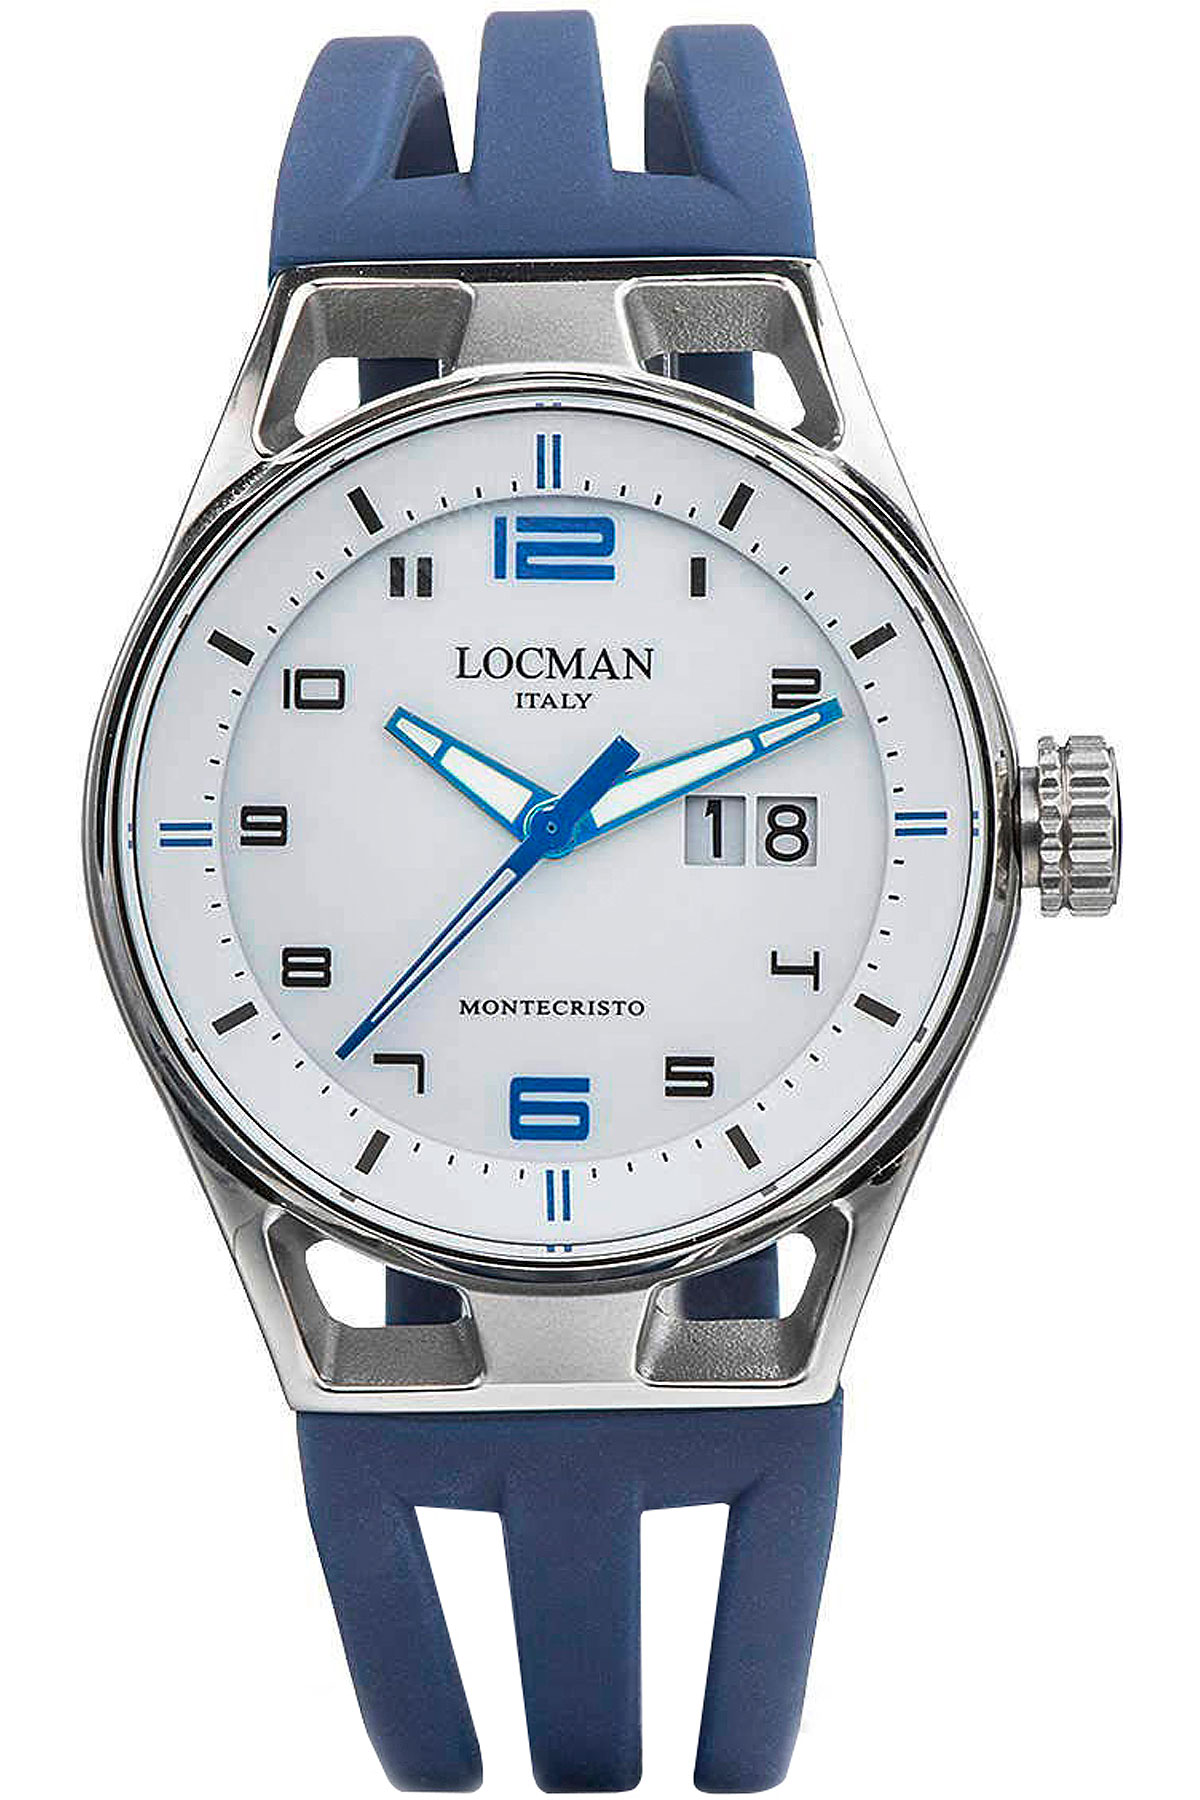 Locman Watch for Men, Blue, Stainless Steel, 2019